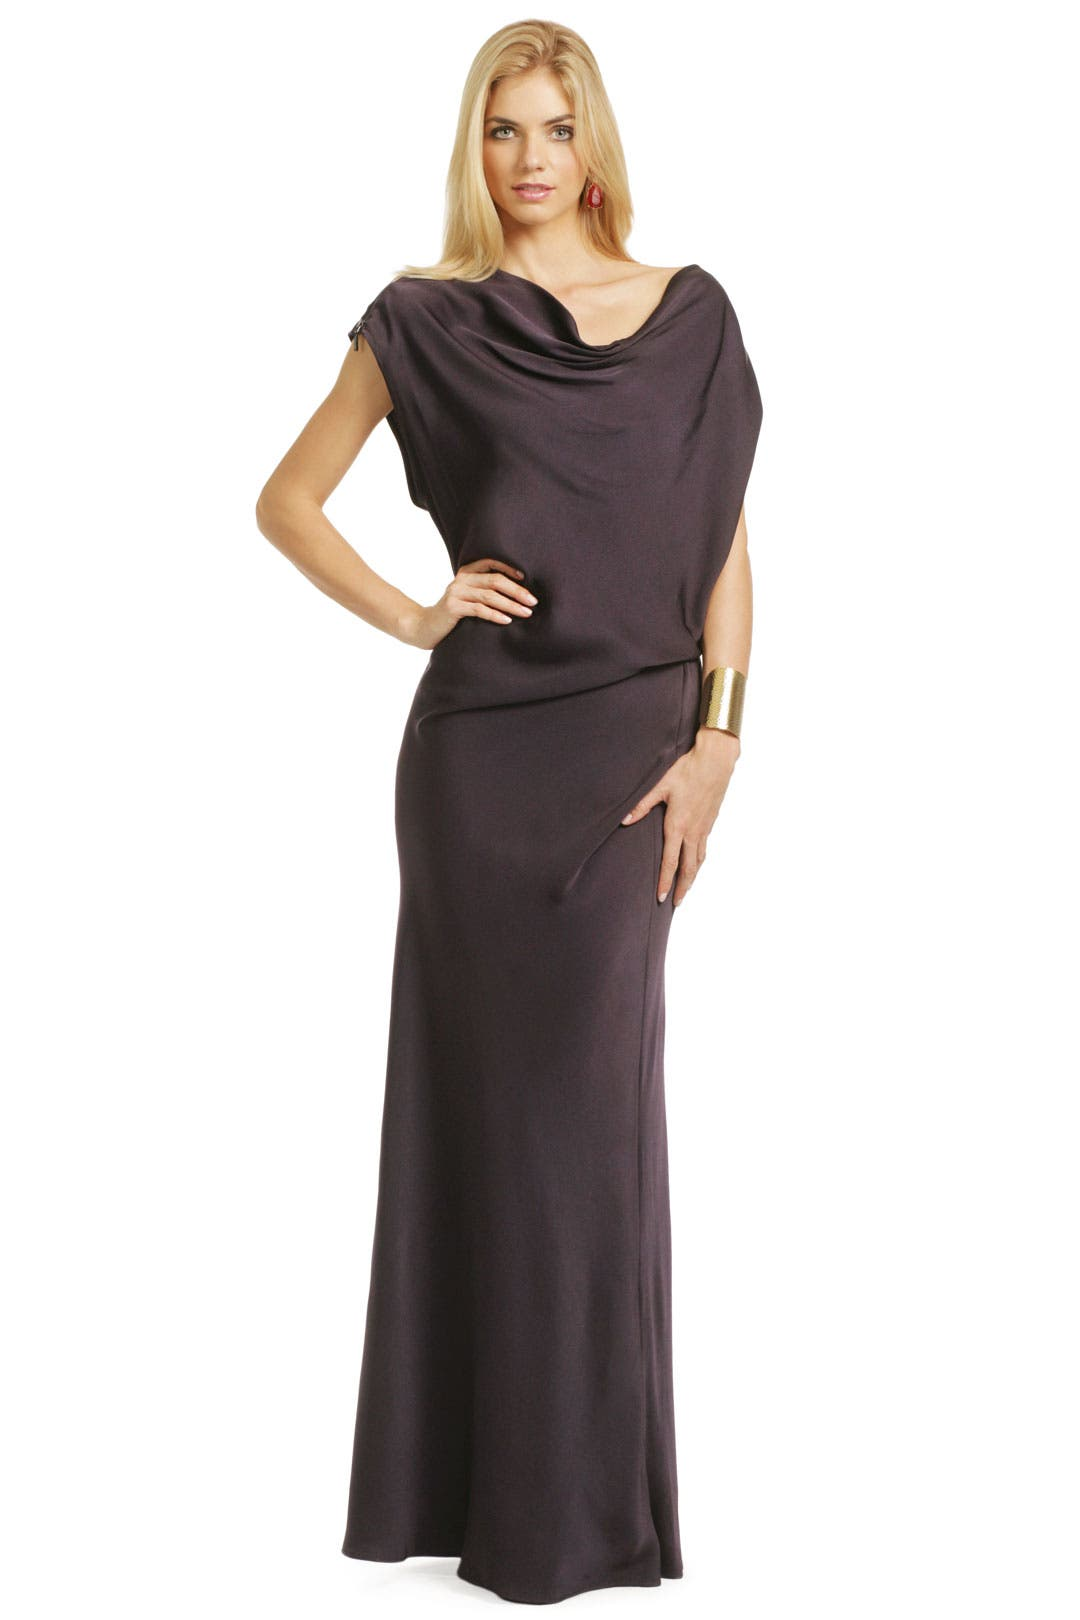 Draped To Perfection Gown by Plein Sud